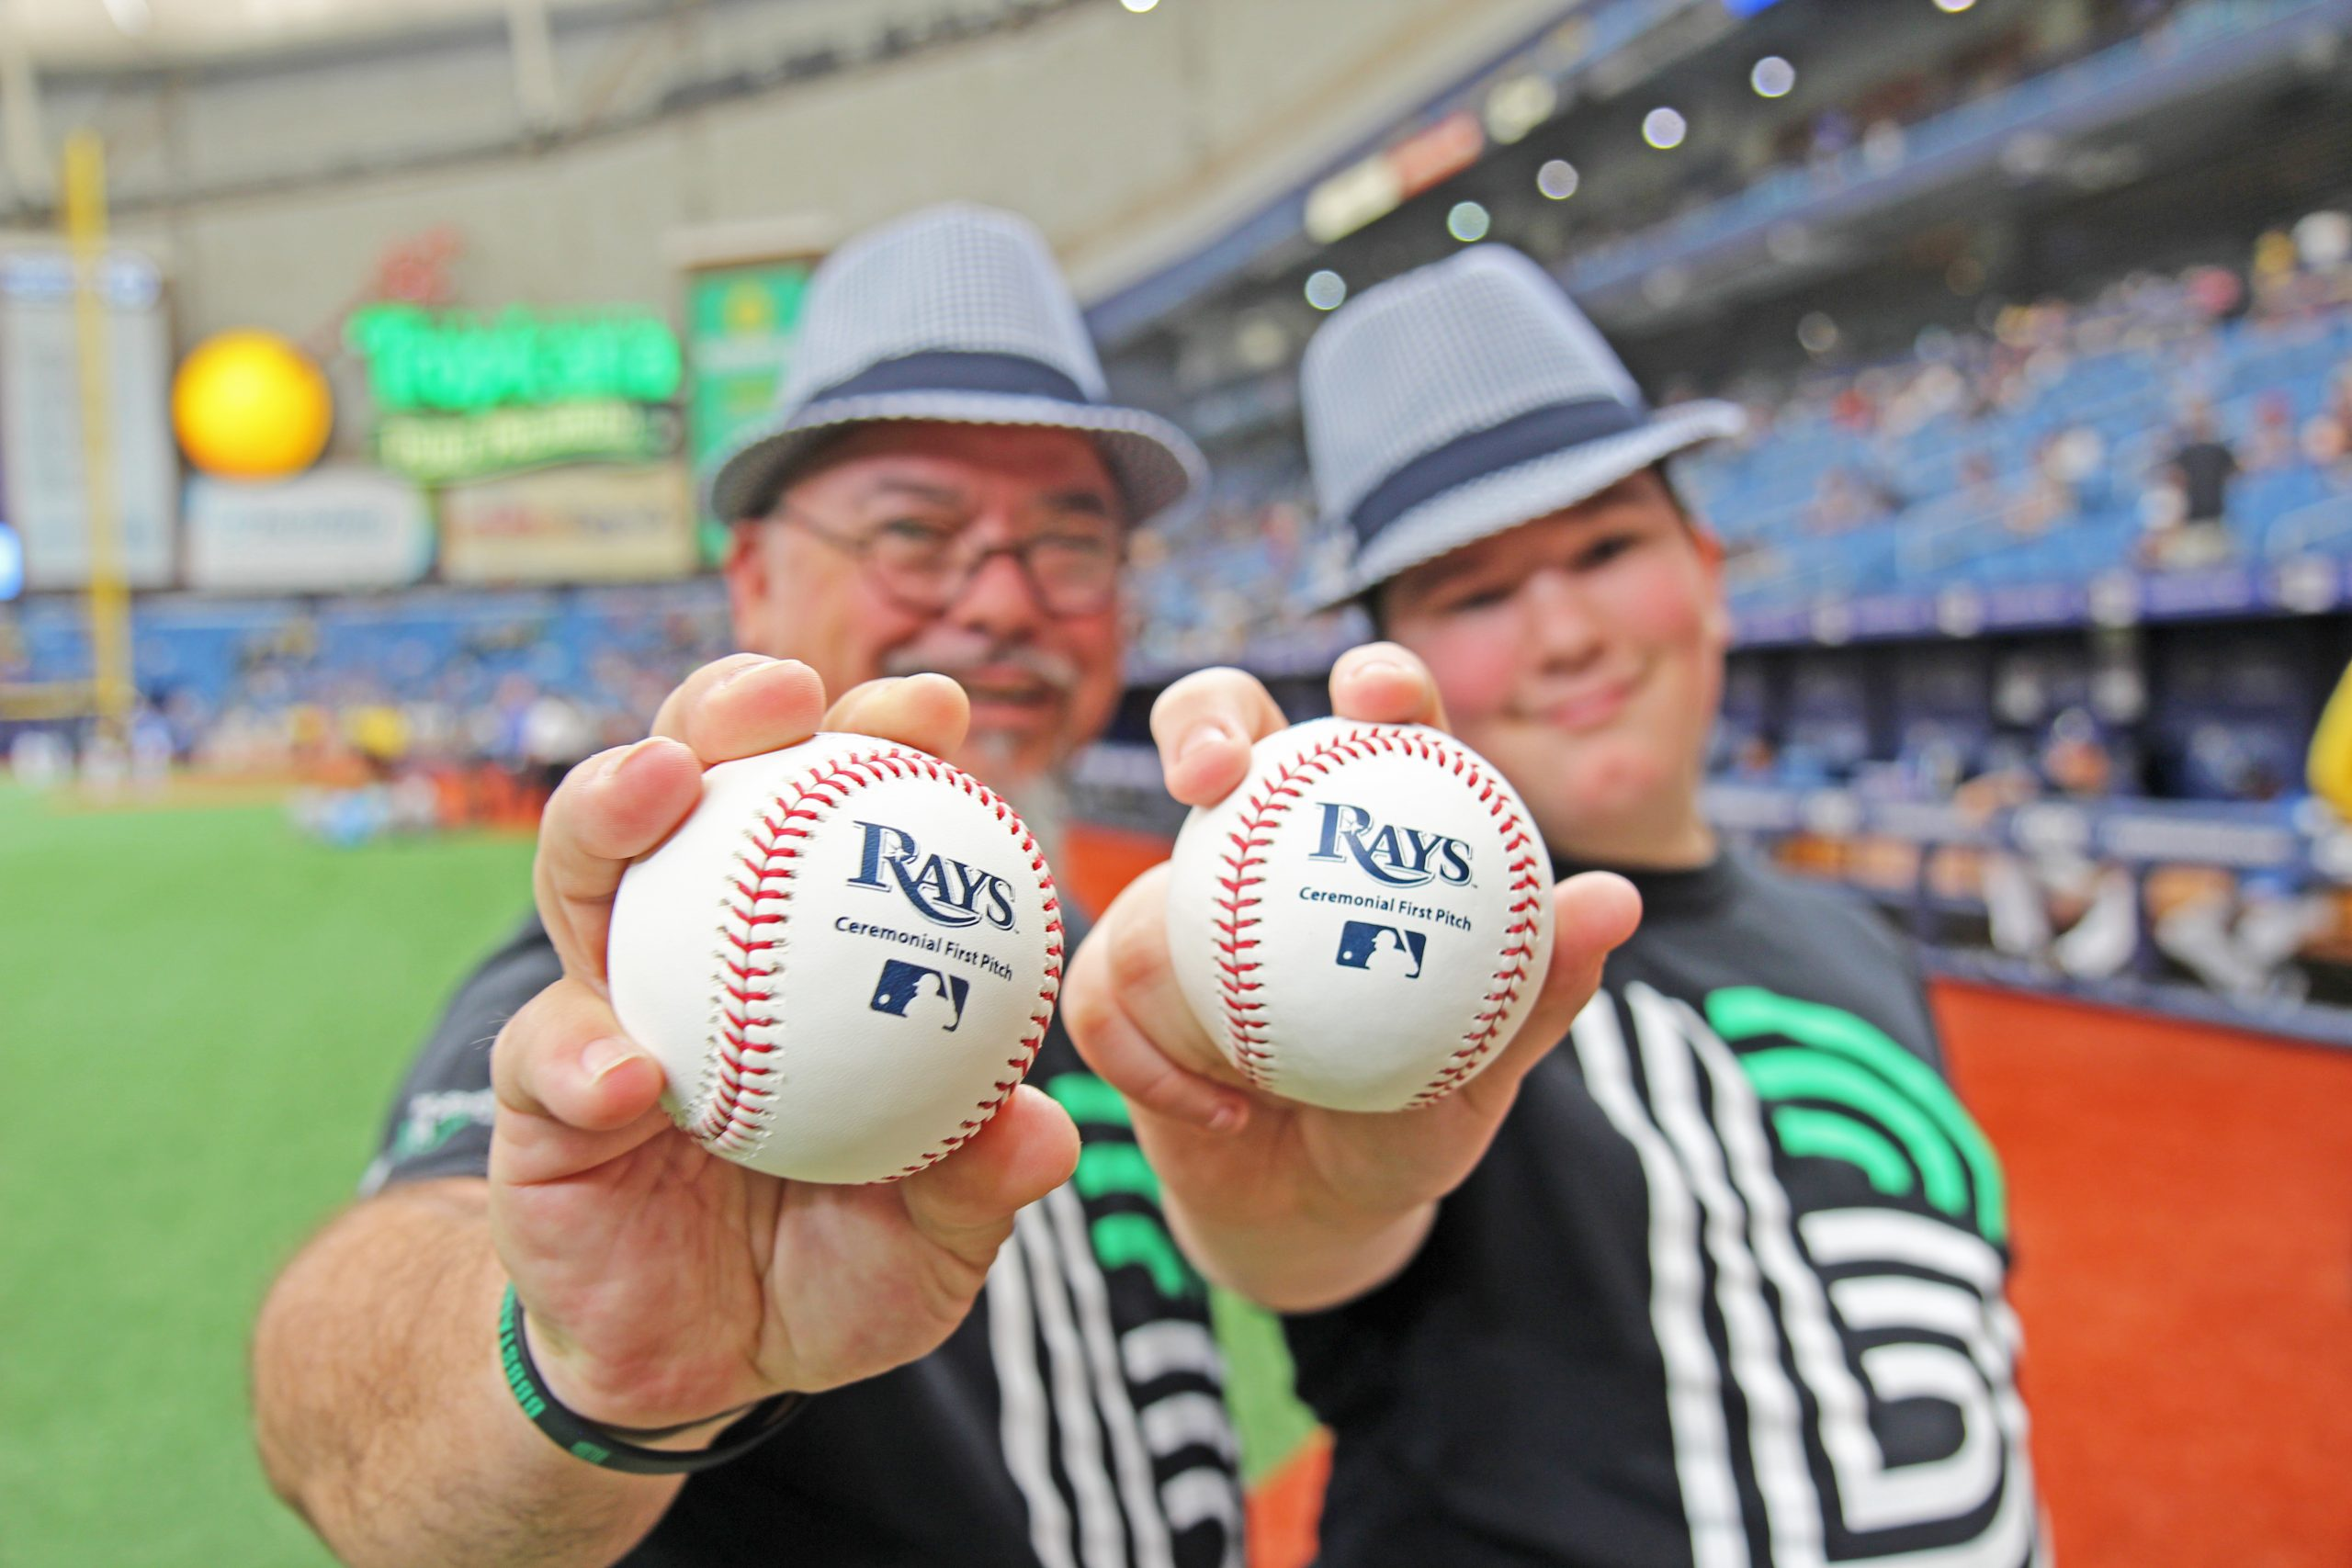 Rays & Rowdies Foundation Matching Donations in May